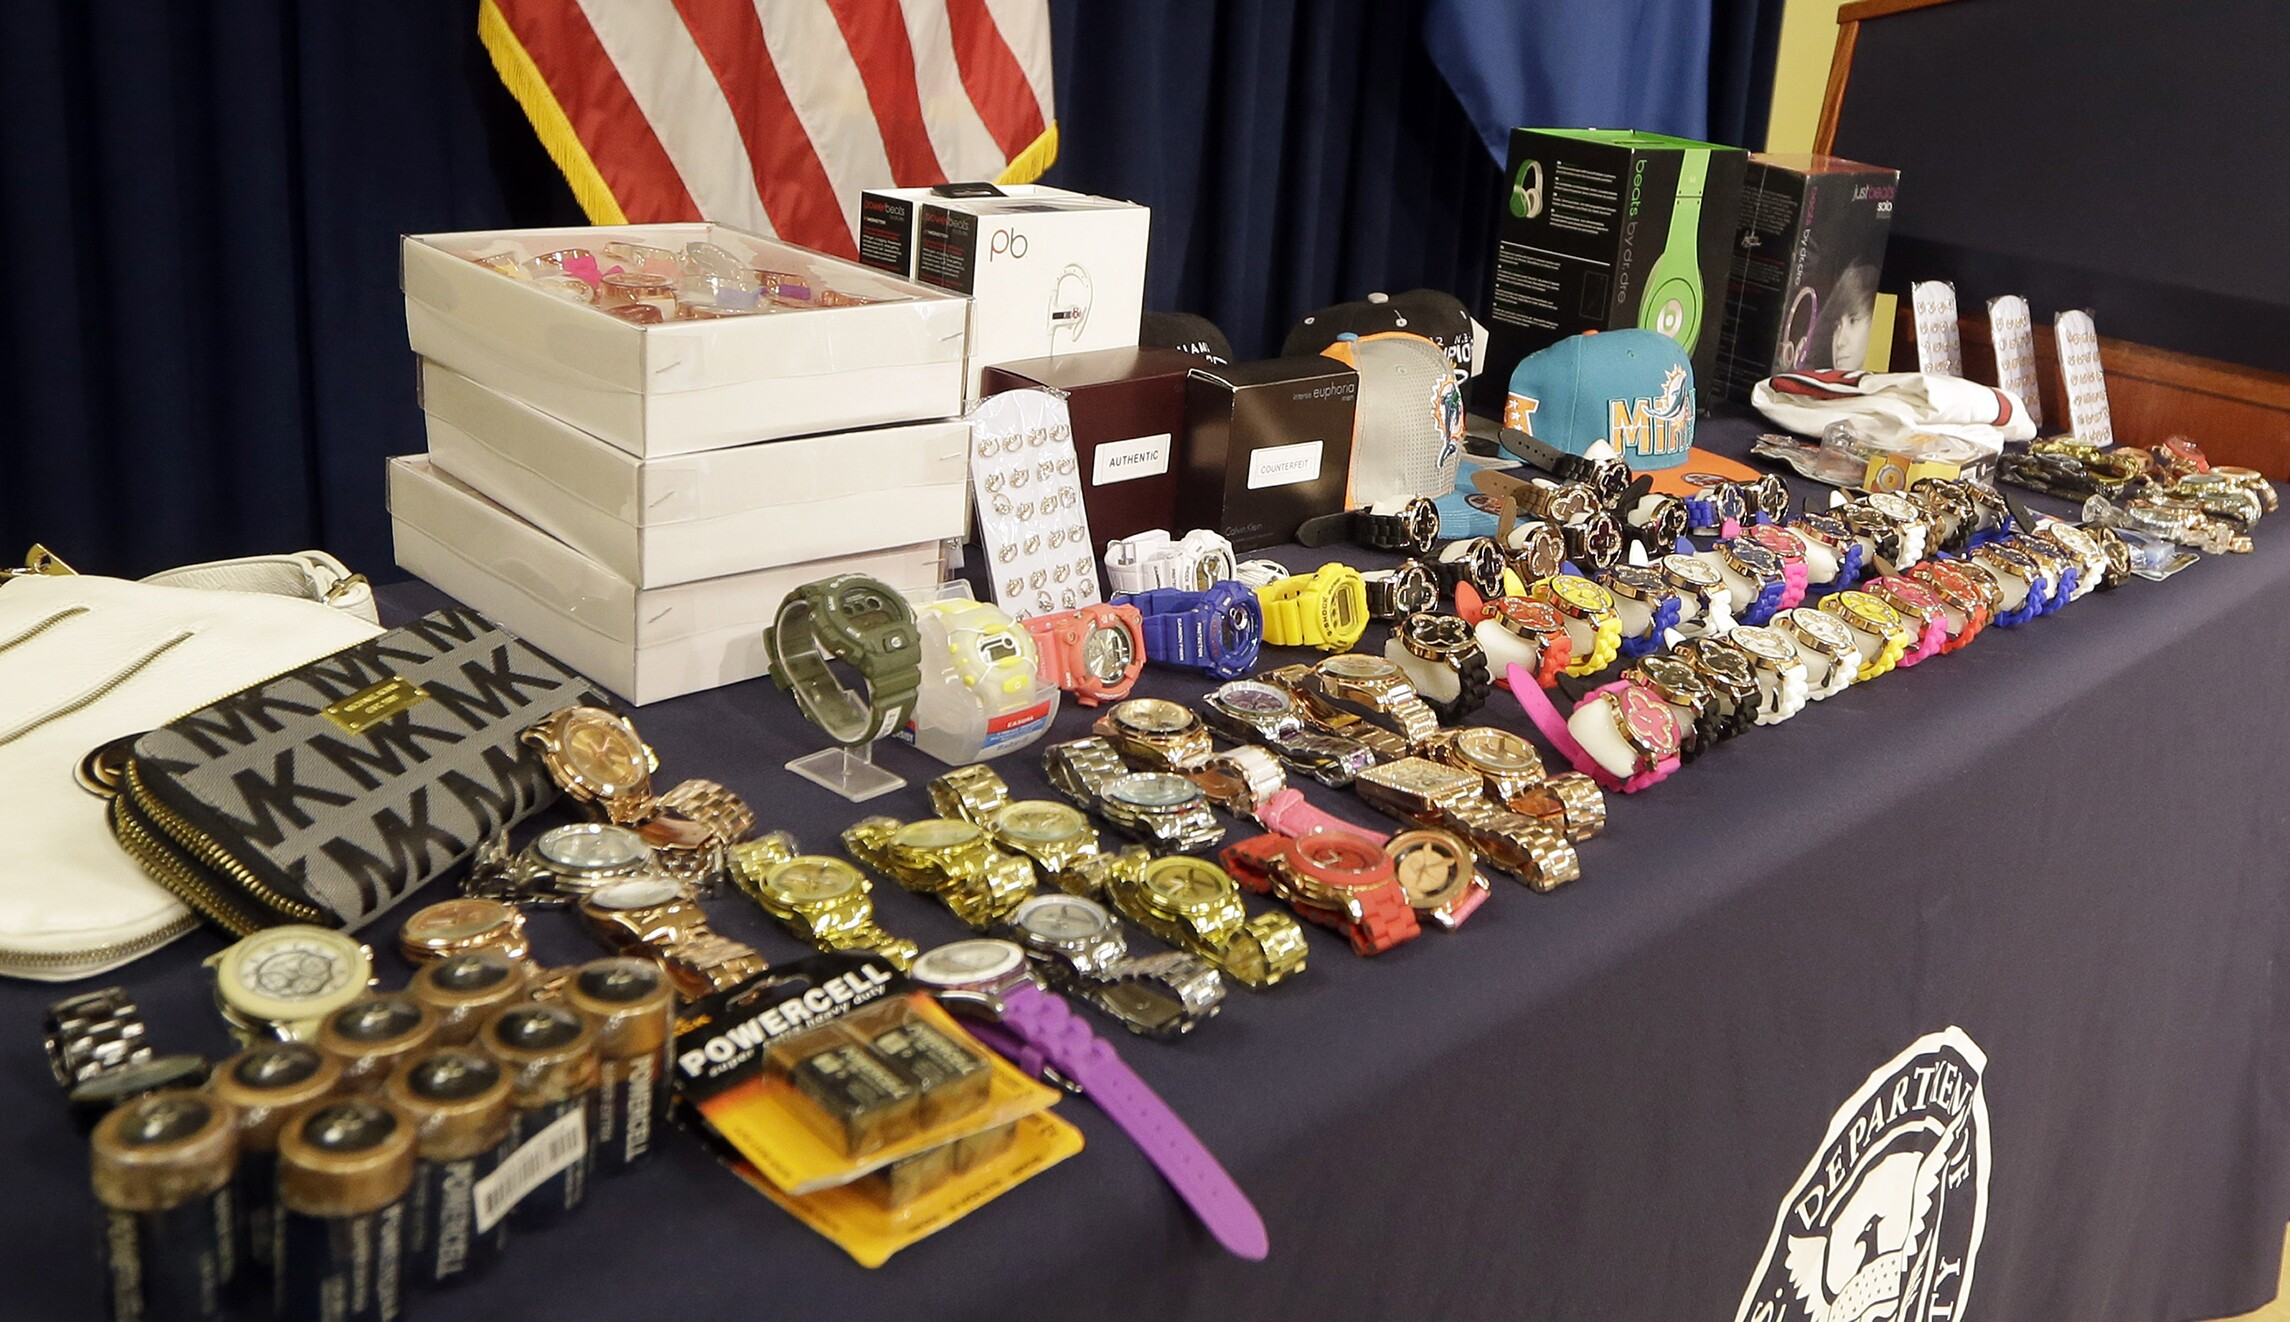 Us Customs Seizure Letter.Us Customs Agencies Seize 1 2b In Counterfeit Imports As